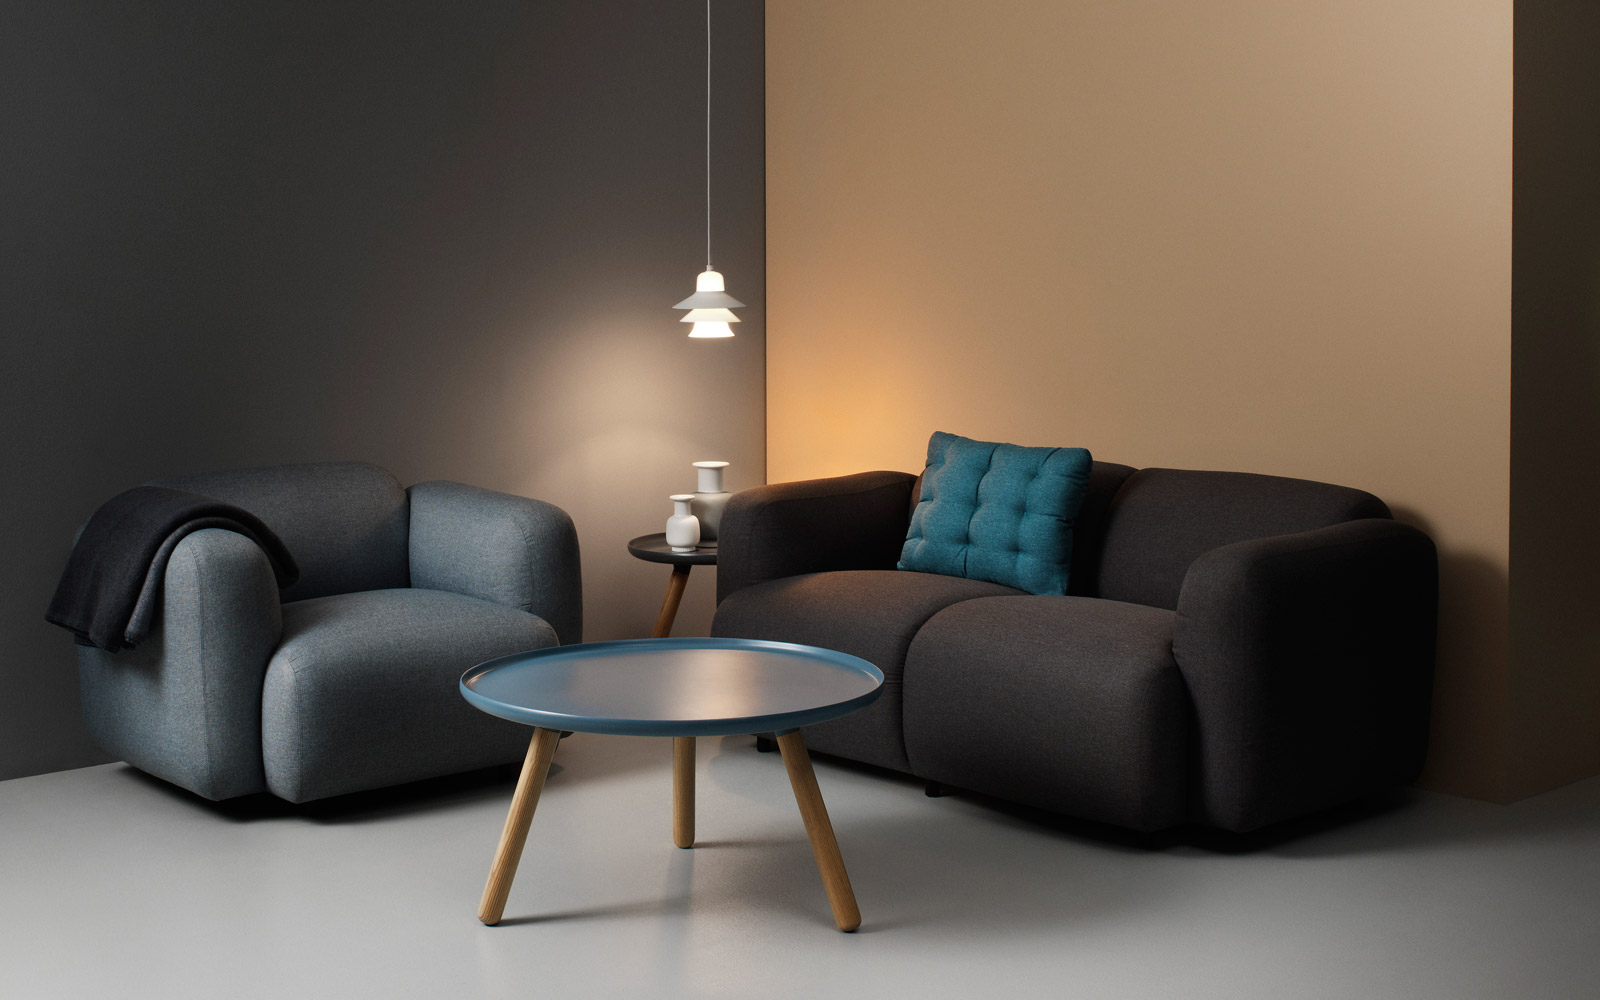 tablo table a minimalistic coffee table in black with. Black Bedroom Furniture Sets. Home Design Ideas